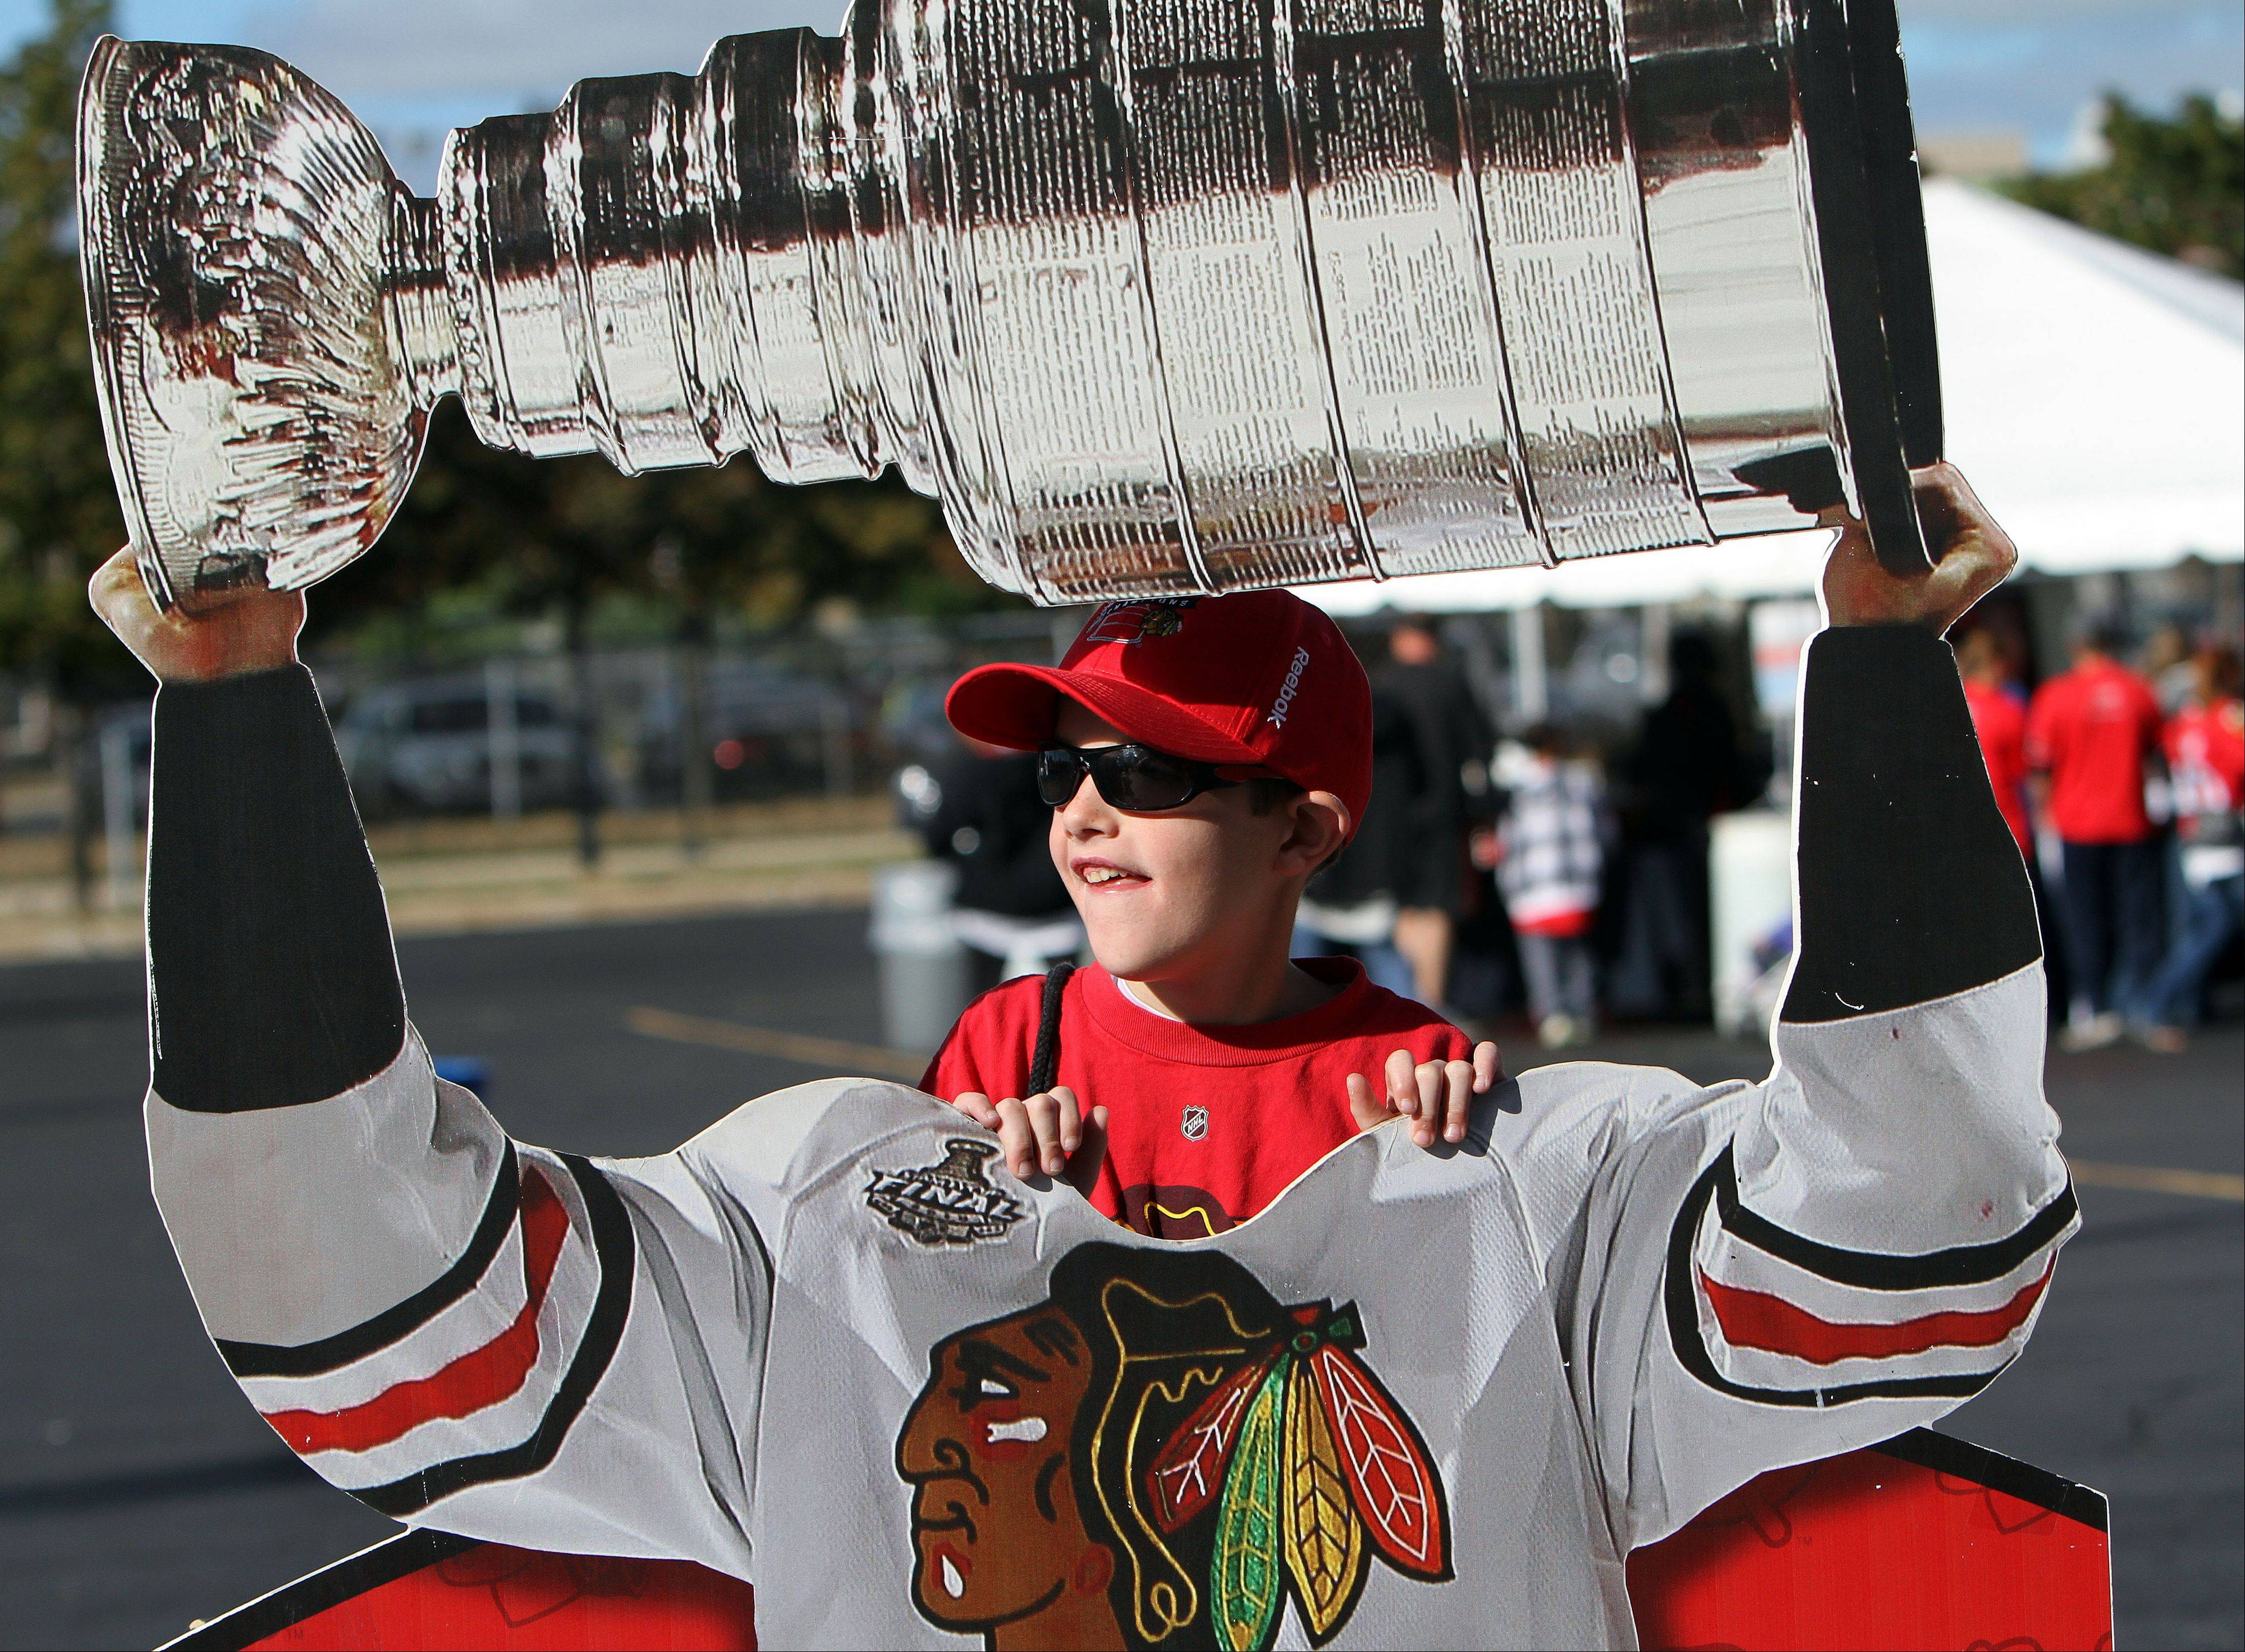 Ten-year-old Cal Hudson of Naperville poses with a cutout of the Stanley Cup.